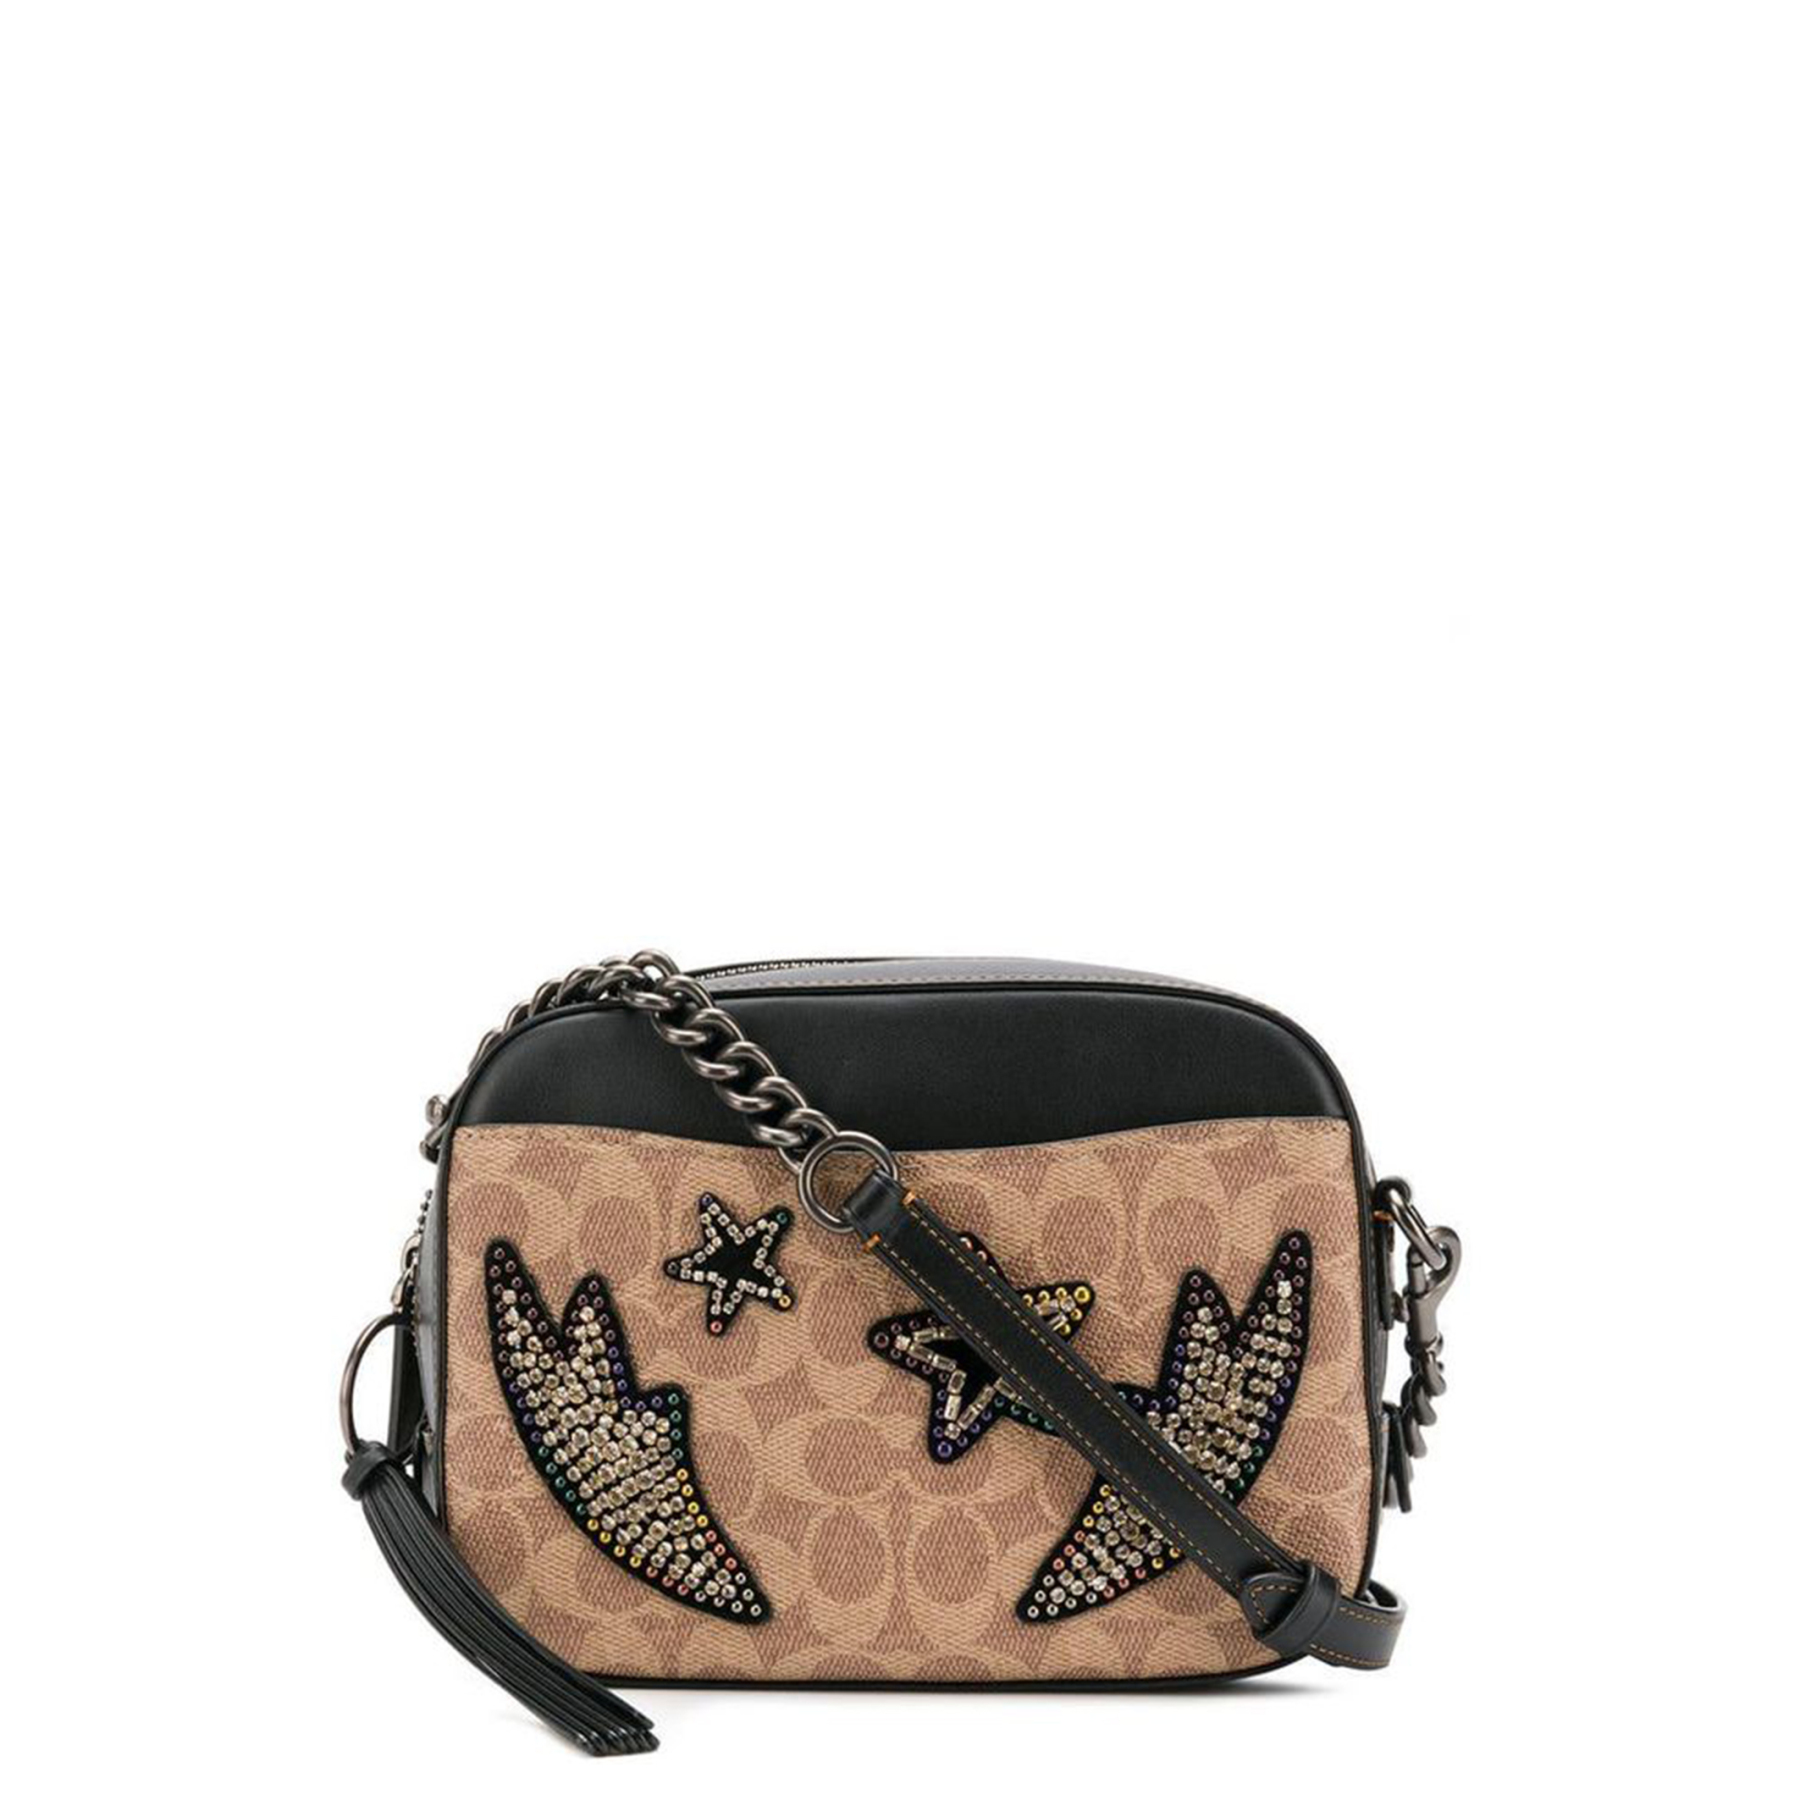 New! Small Bag Woman 100% Original Brand Coach - 31652